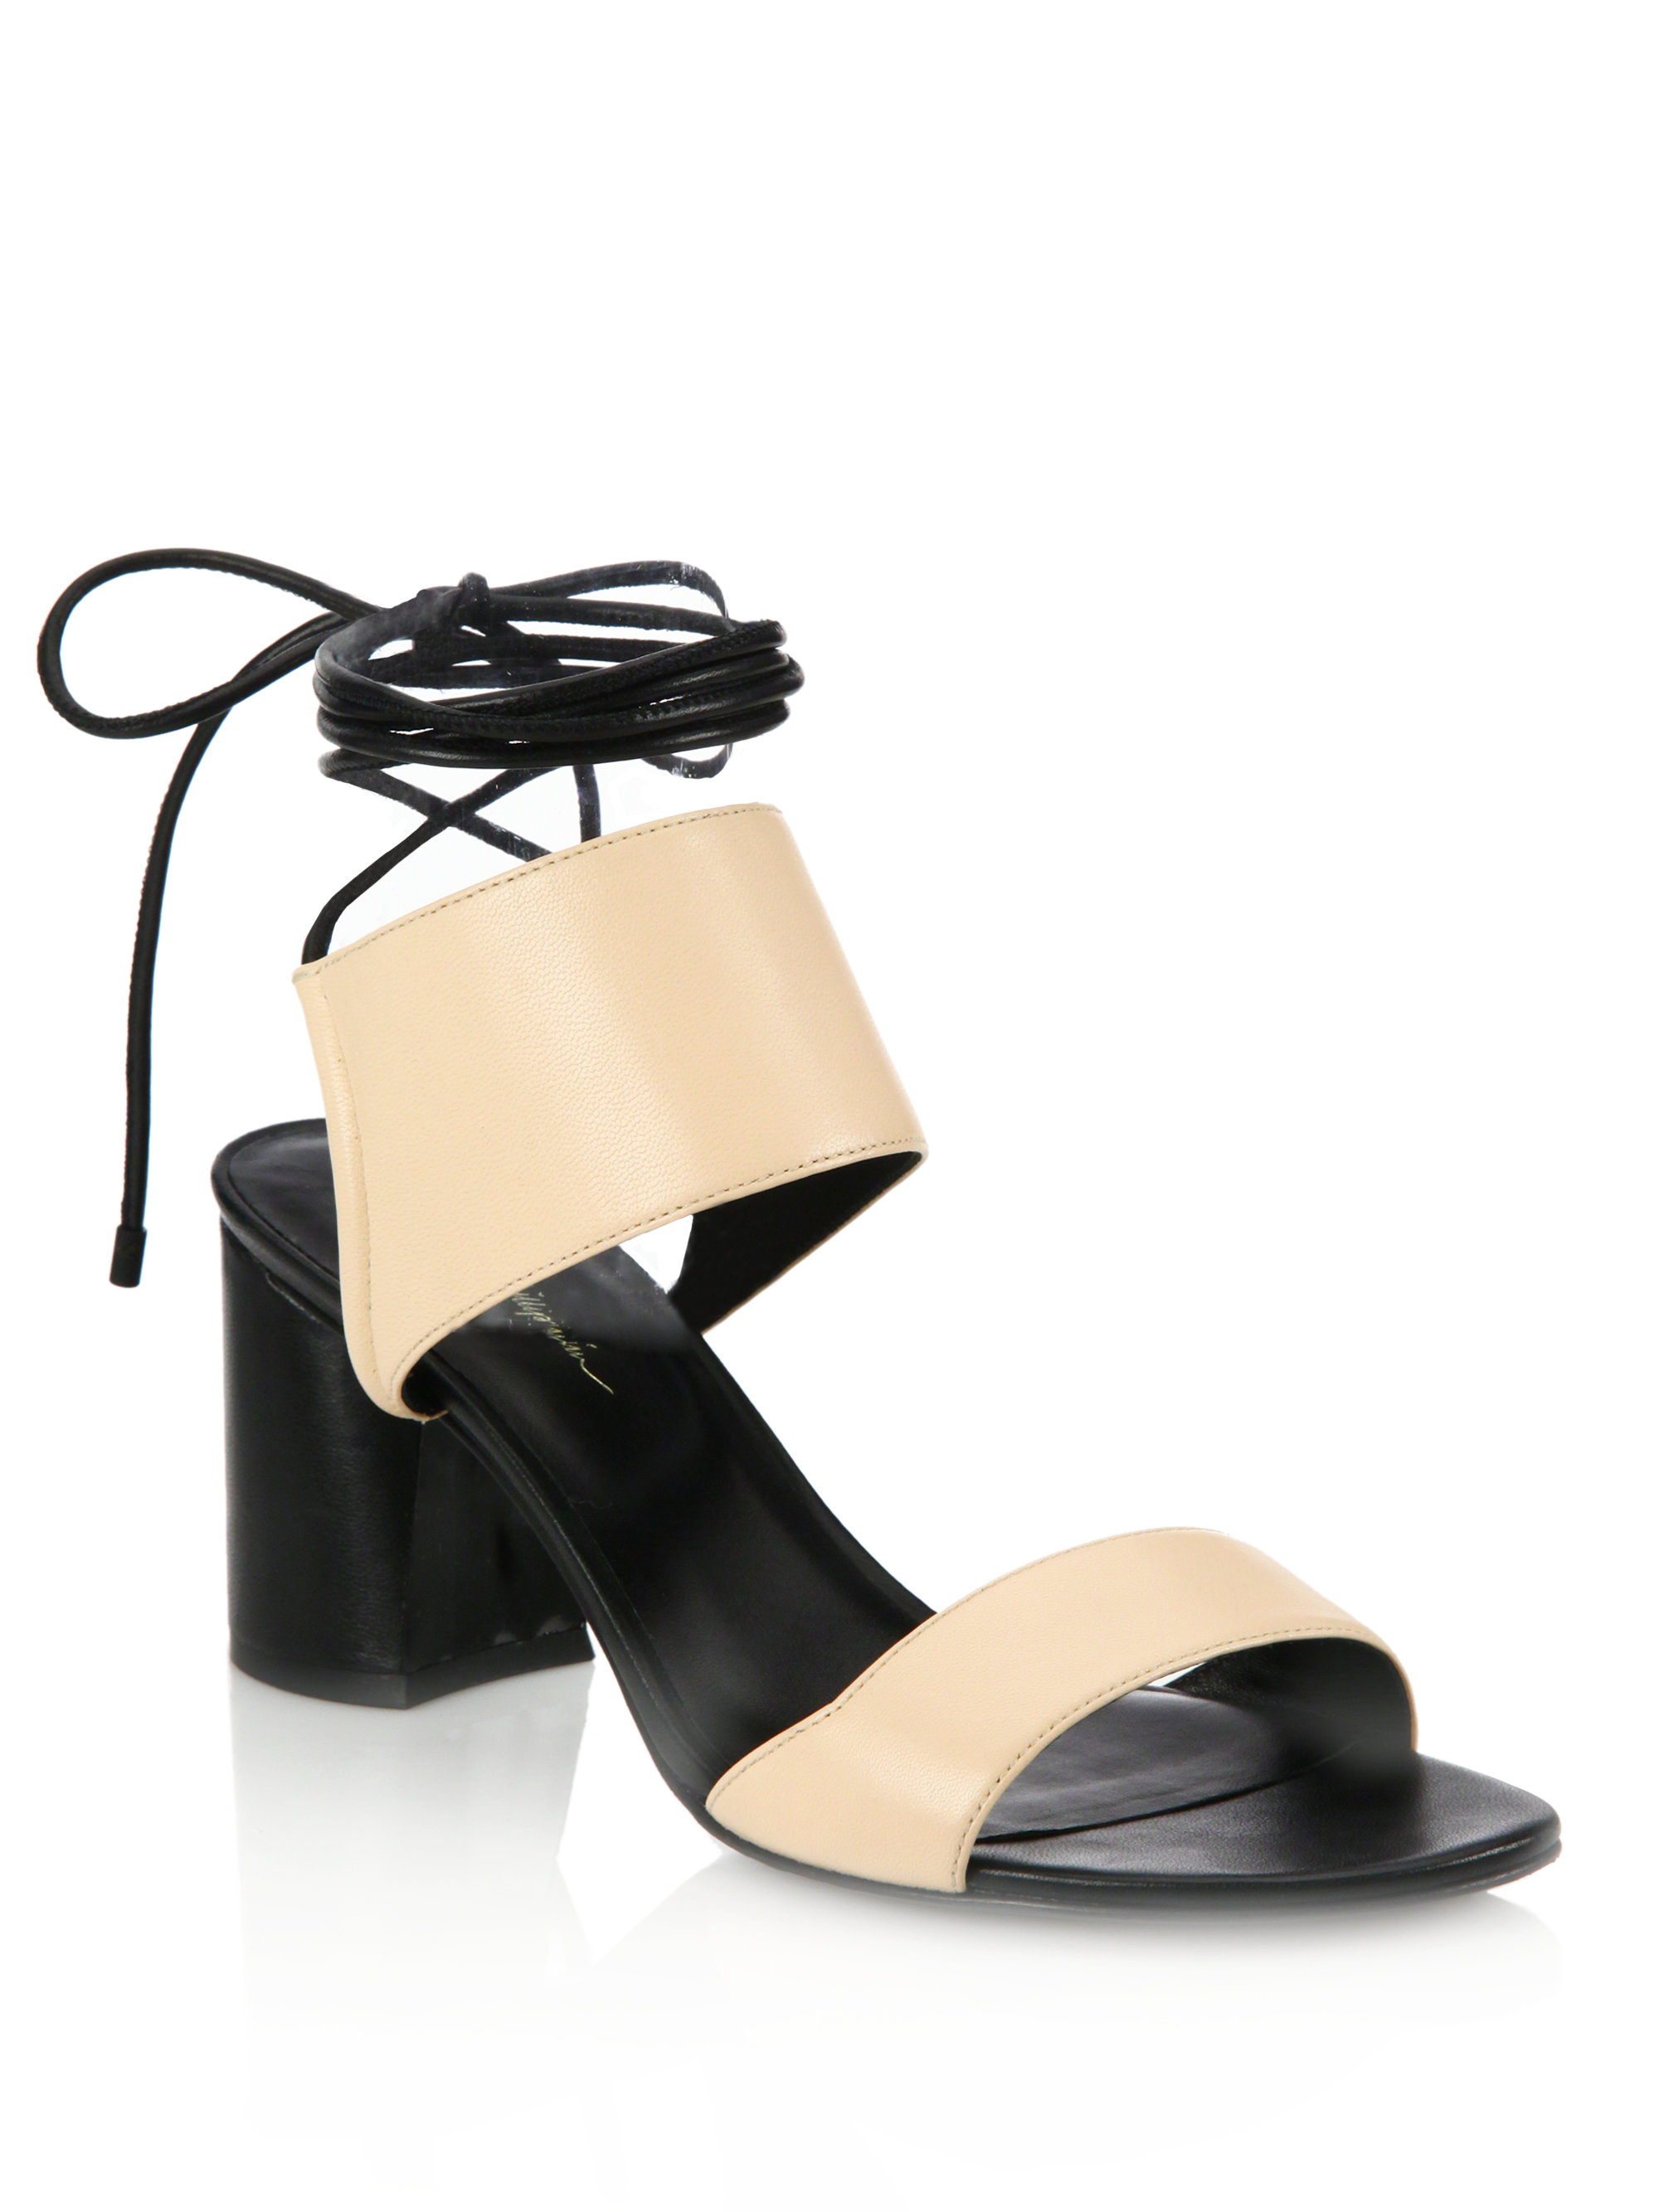 FOOTWEAR - Sandals 3.1 Phillip Lim HlINNAbnmJ